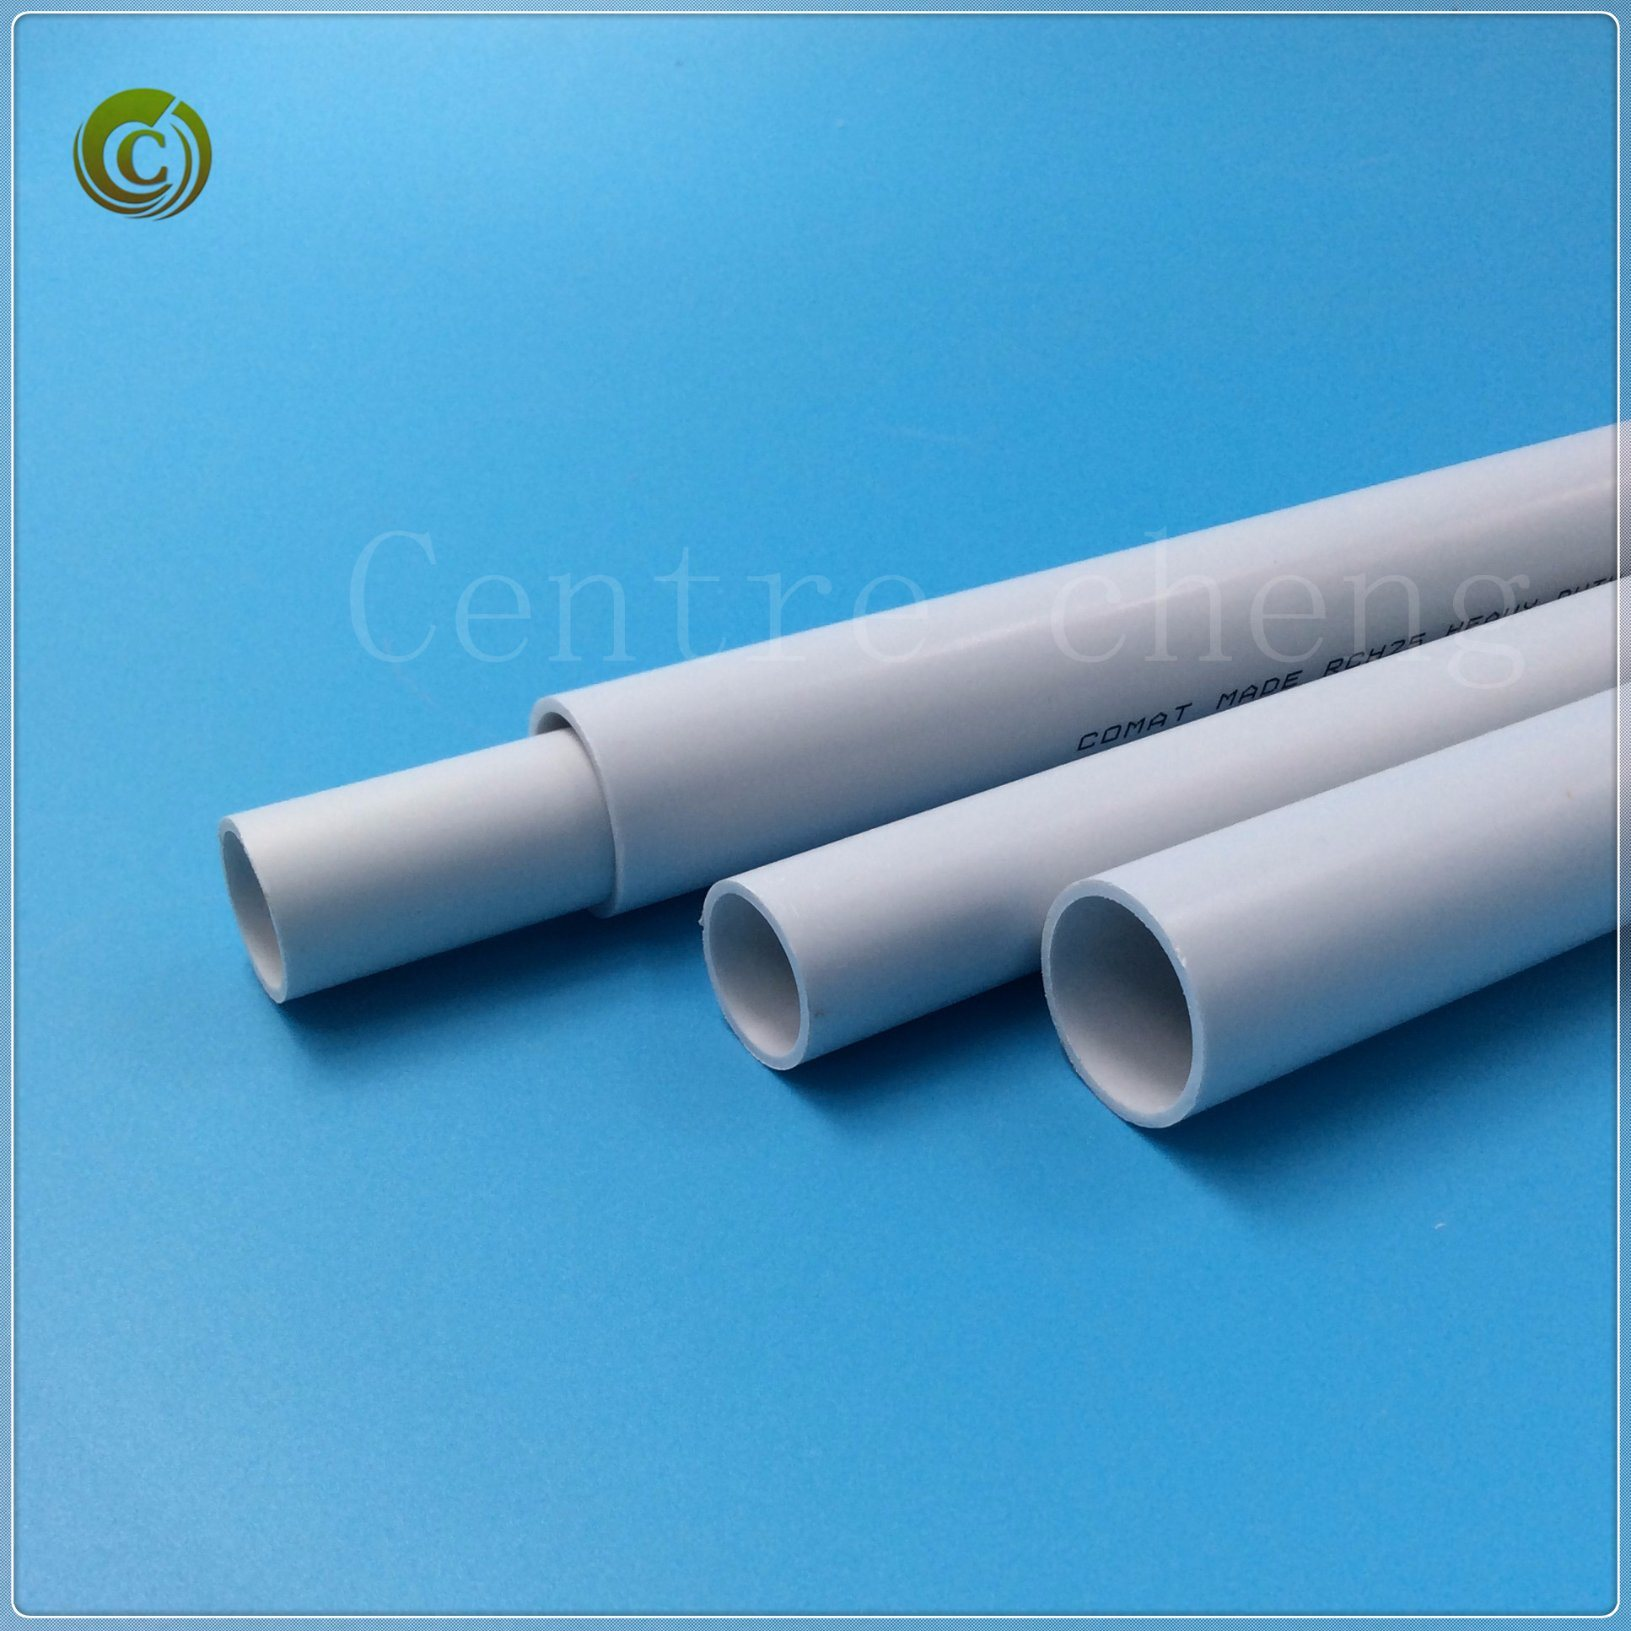 china 2018 32mm pvc conduit pipe pvc electrical pipe pvc piping for rh centrecheng en made in china com pvc conduit outdoor wiring pvc conduit electrical wiring